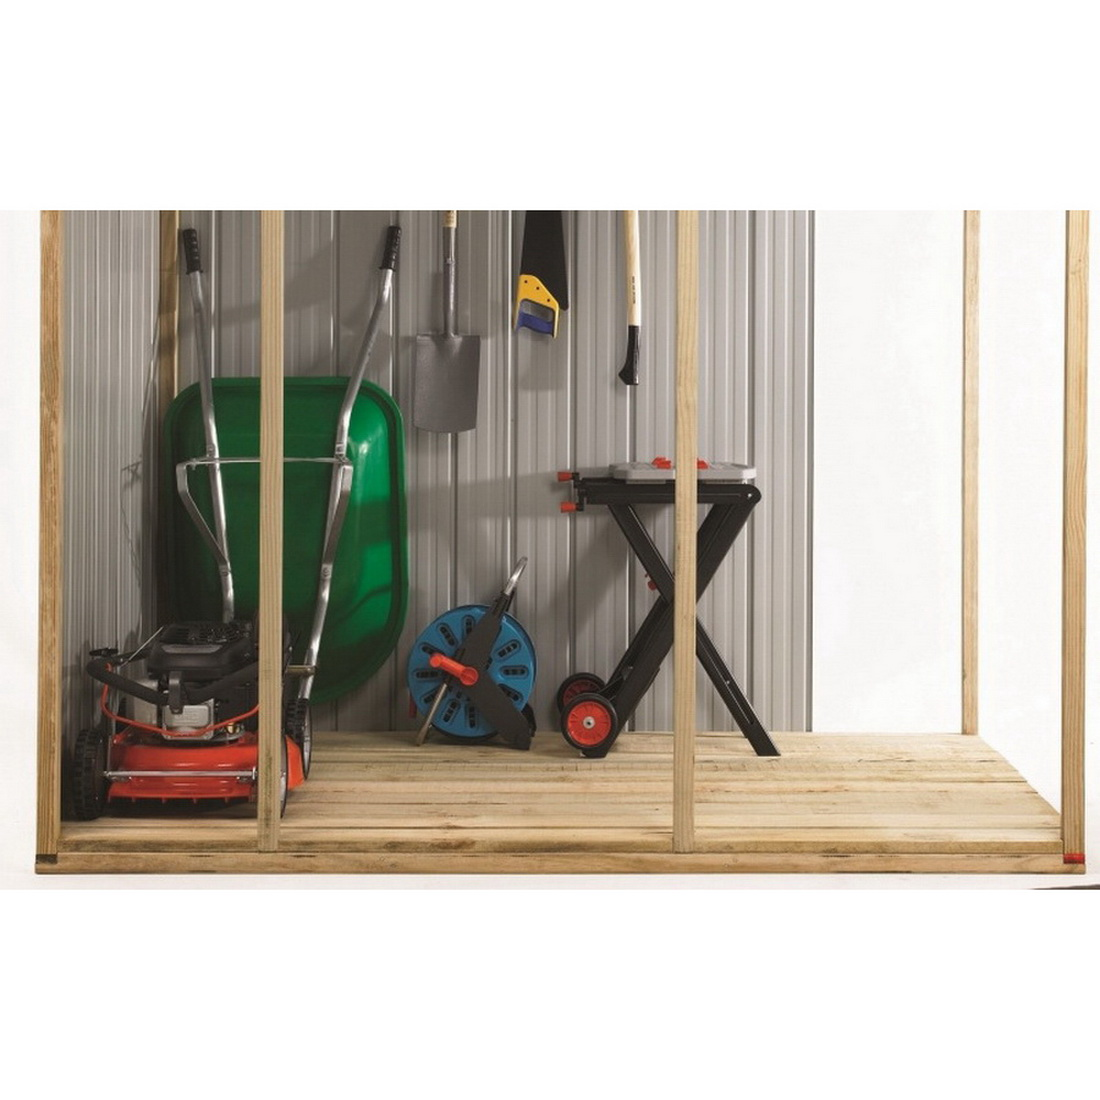 Kiwi Garden Shed Timber Floor 4.21 x 1.715m